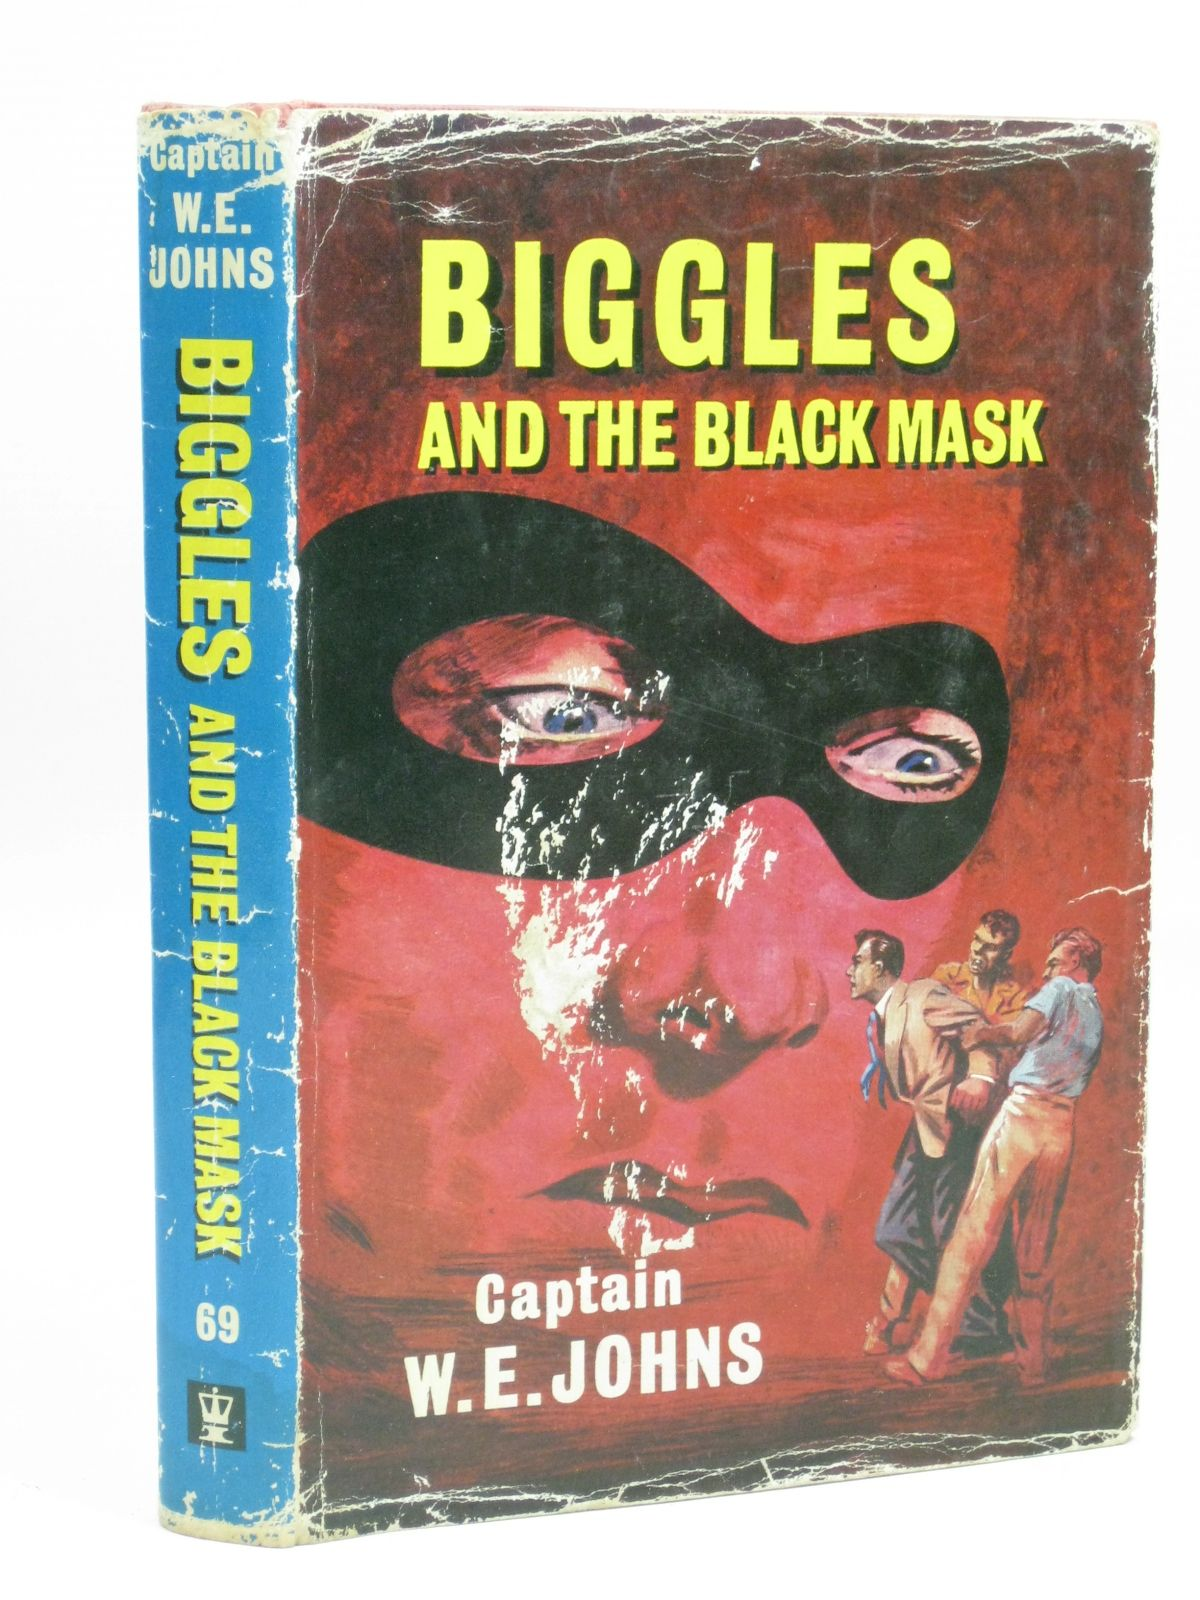 Photo of BIGGLES AND THE BLACK MASK written by Johns, W.E. illustrated by Stead,  published by Hodder & Stoughton (STOCK CODE: 1405902)  for sale by Stella & Rose's Books